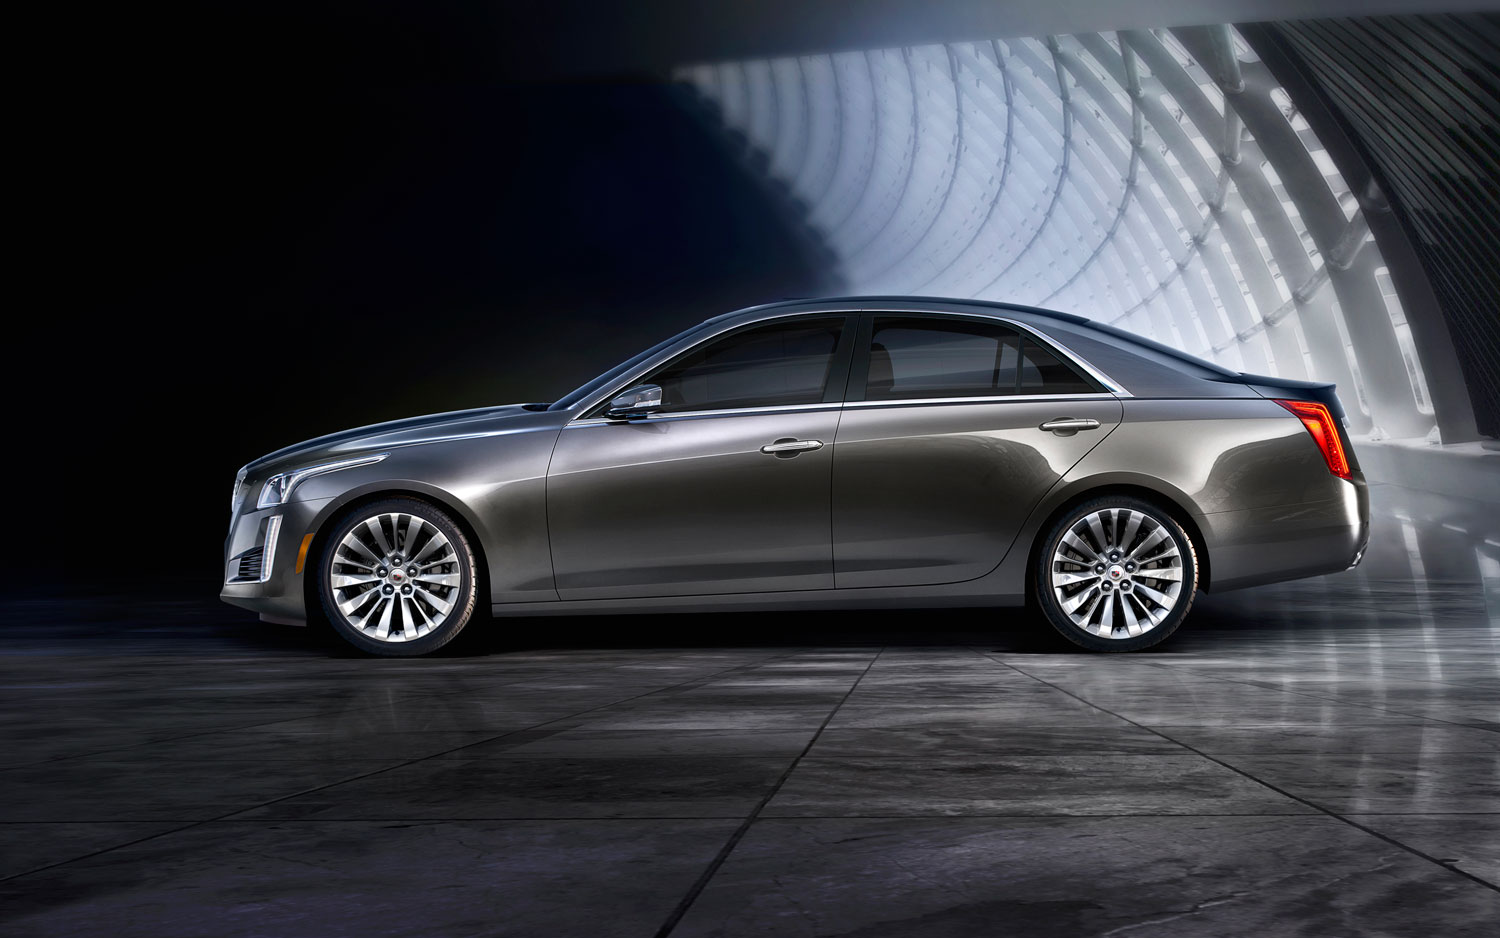 2014 cadillac cts sedan new cars reviews. Cars Review. Best American Auto & Cars Review